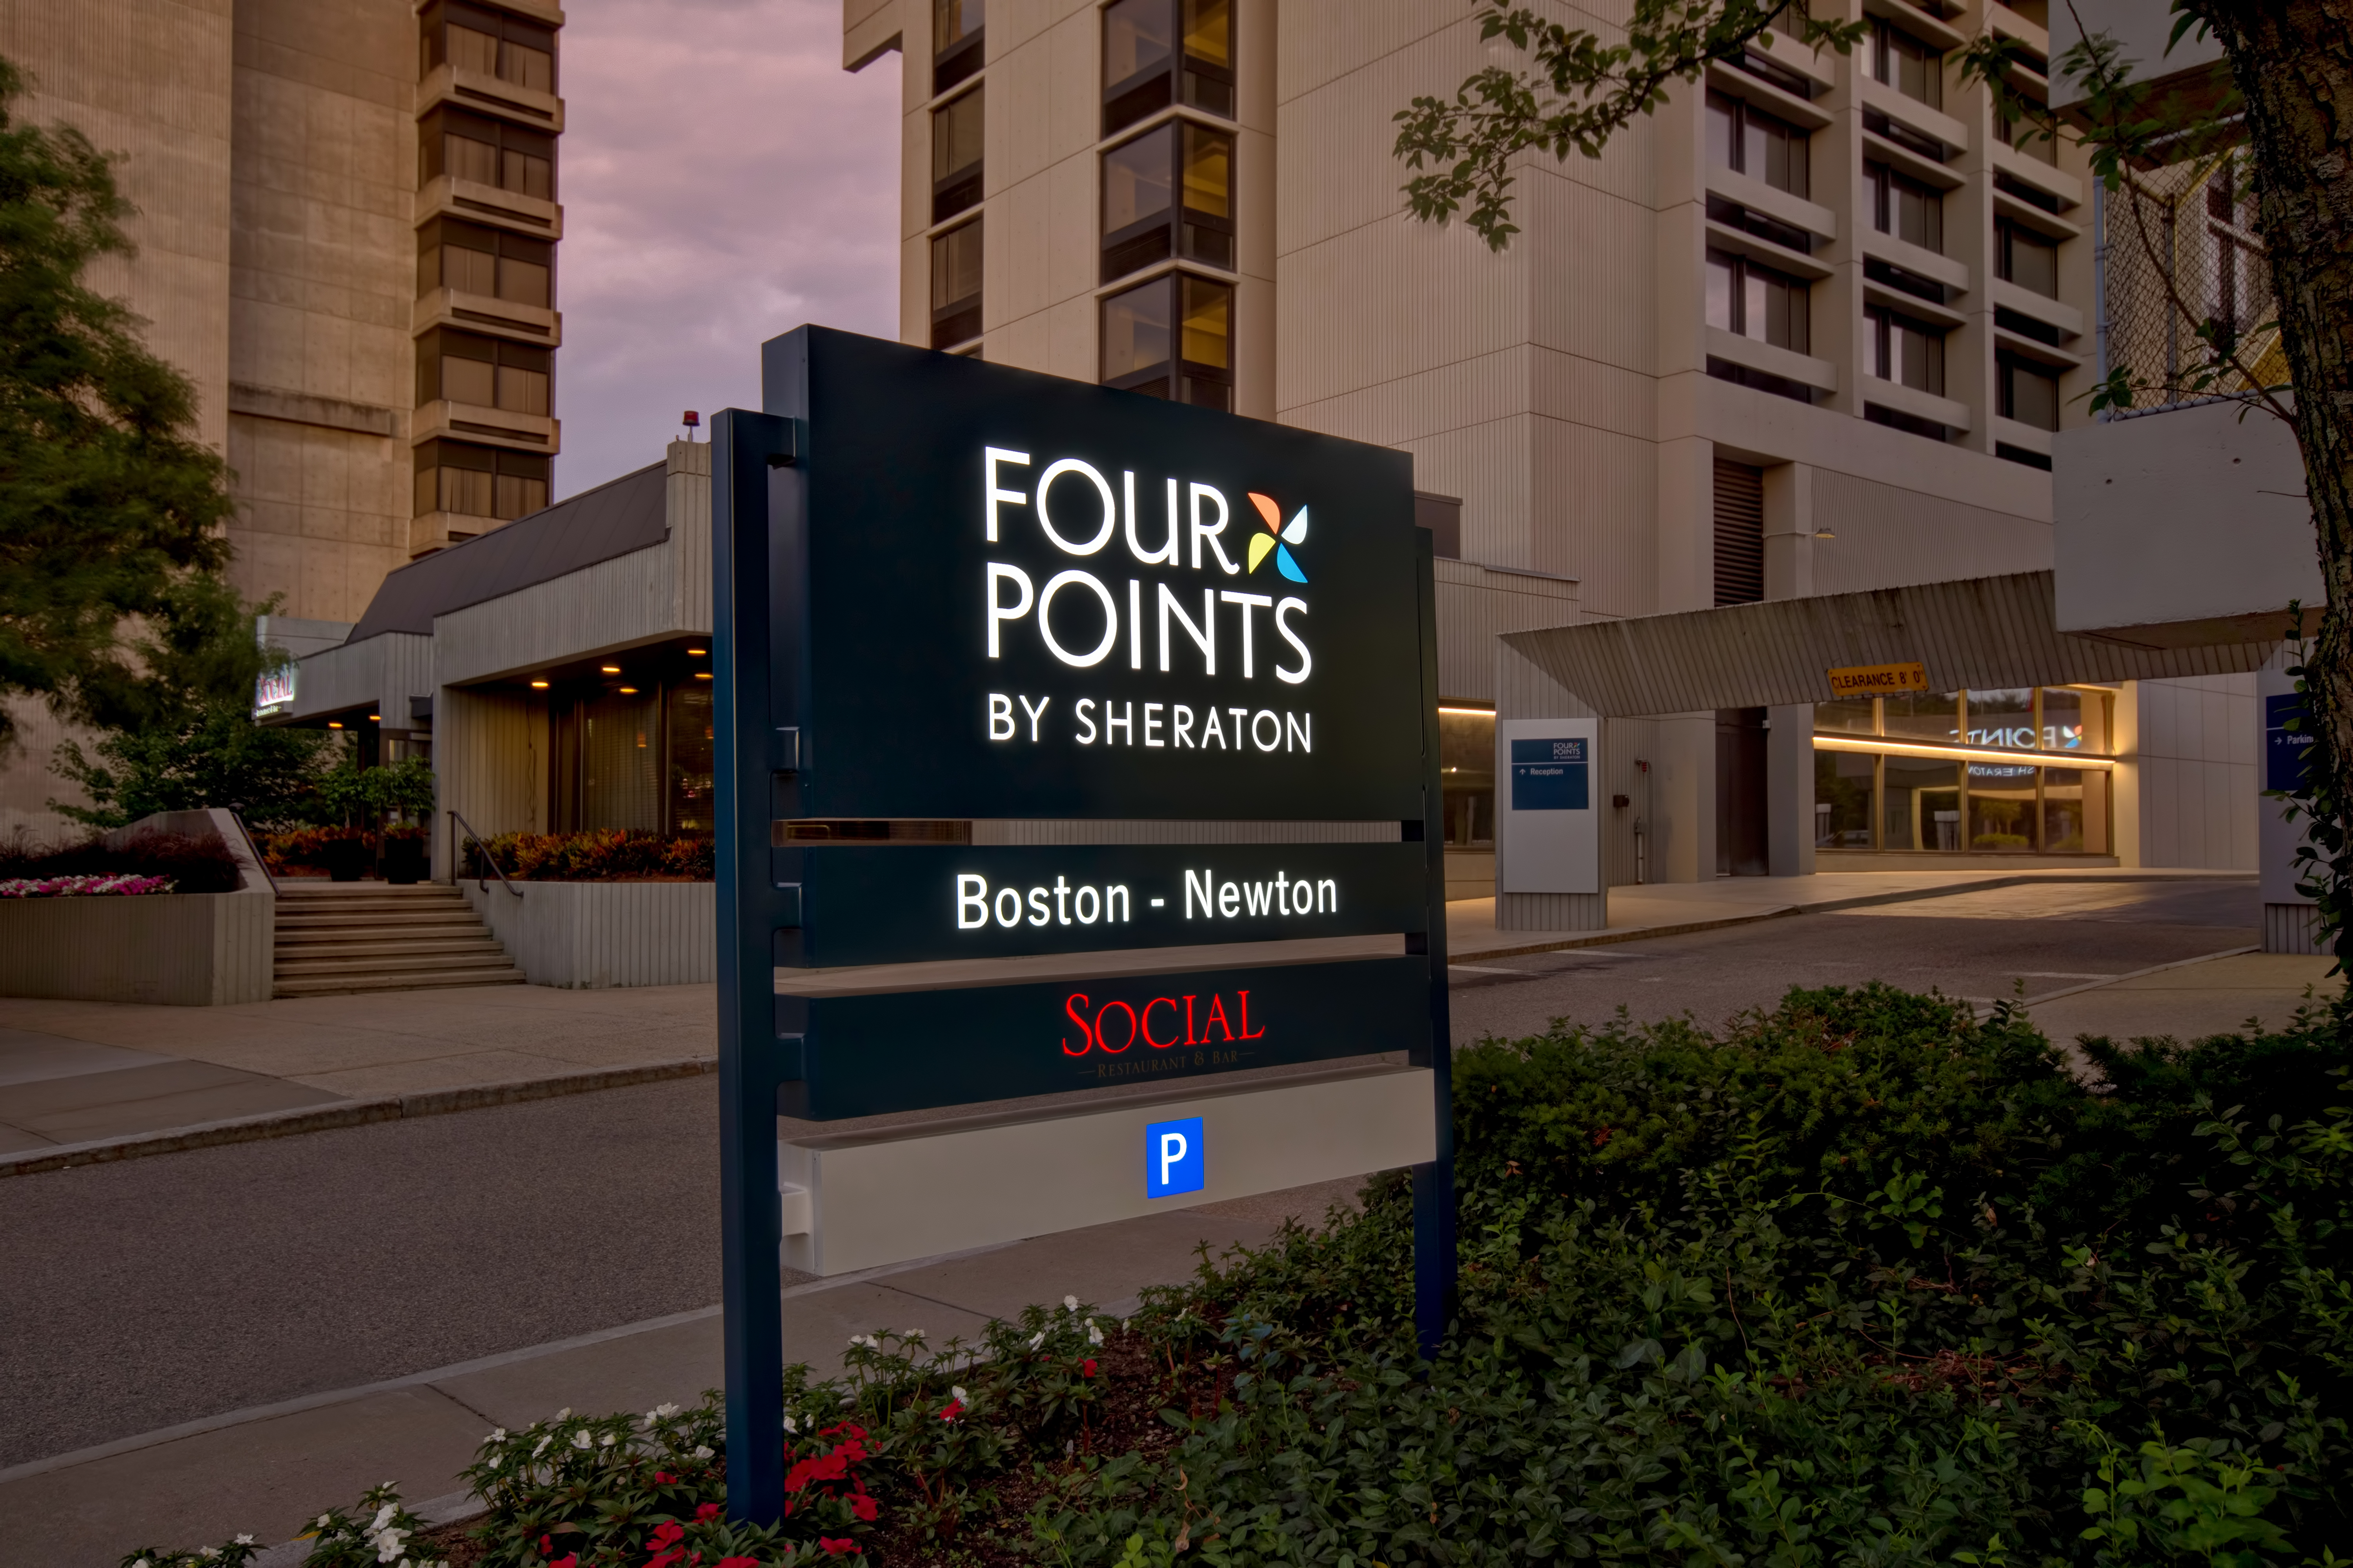 https://www.hotelsbyday.com/_data/default-hotel_image/4/20240/driveway-sign-night.jpg